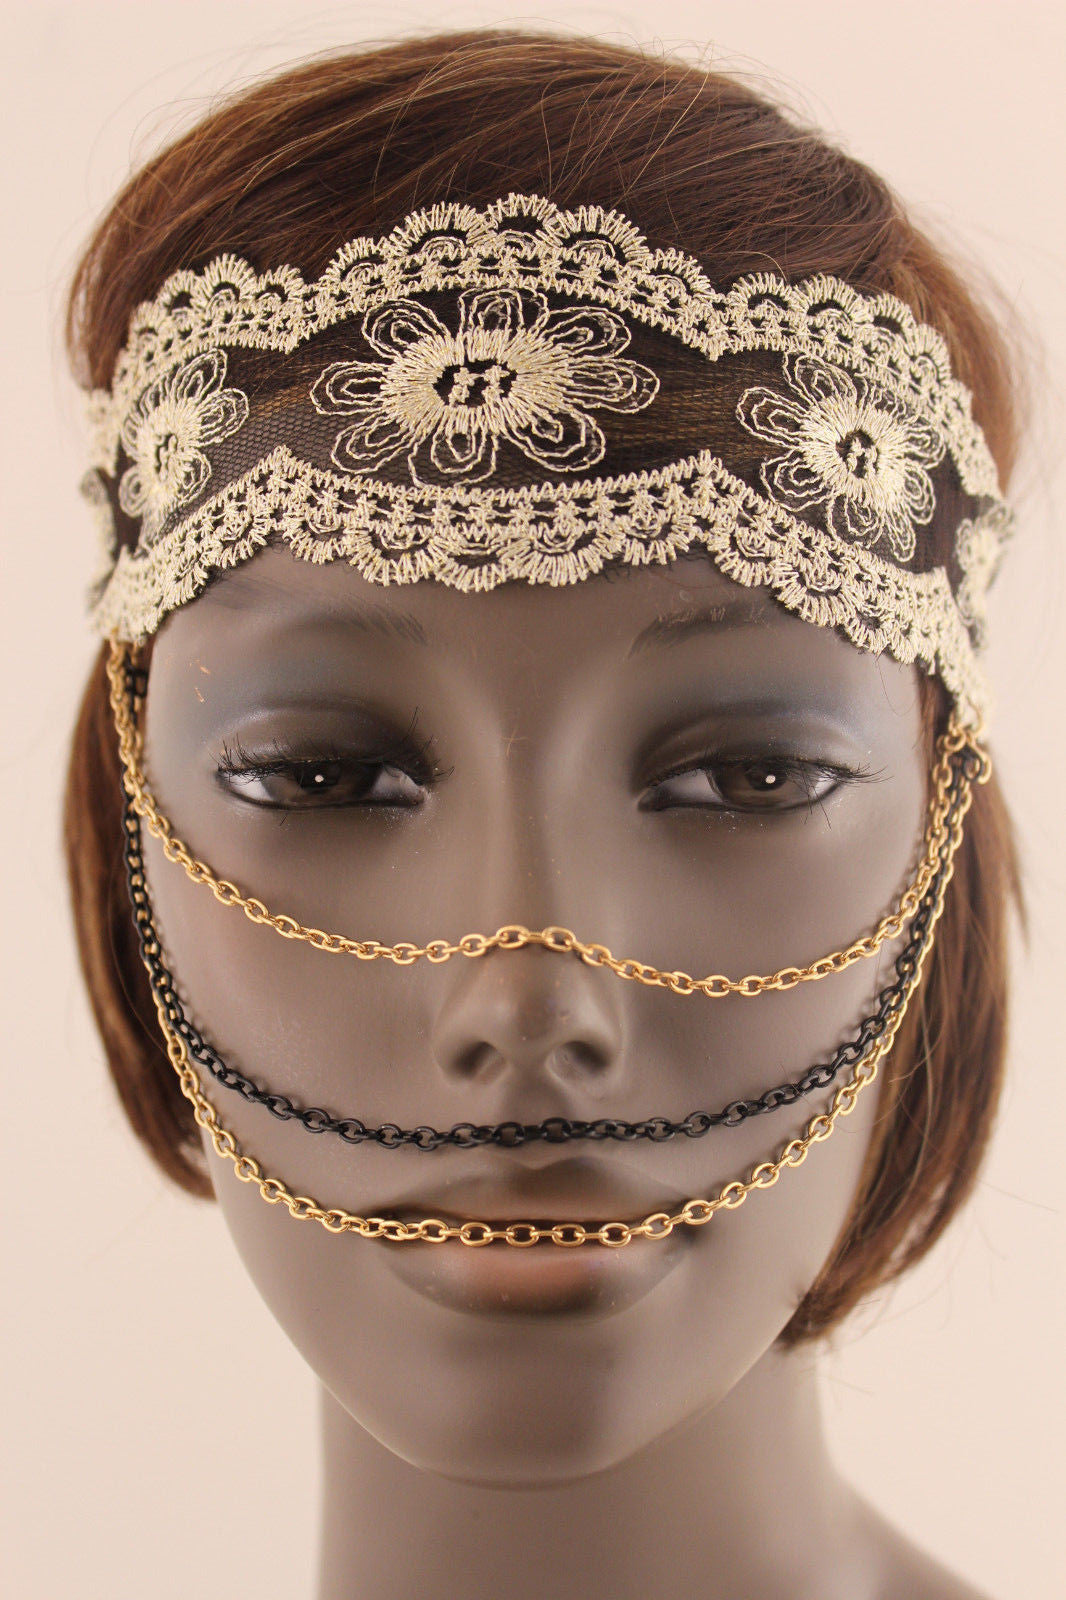 Beige Fabric Lace Gold Black Metal Elastic Chains Face -9937